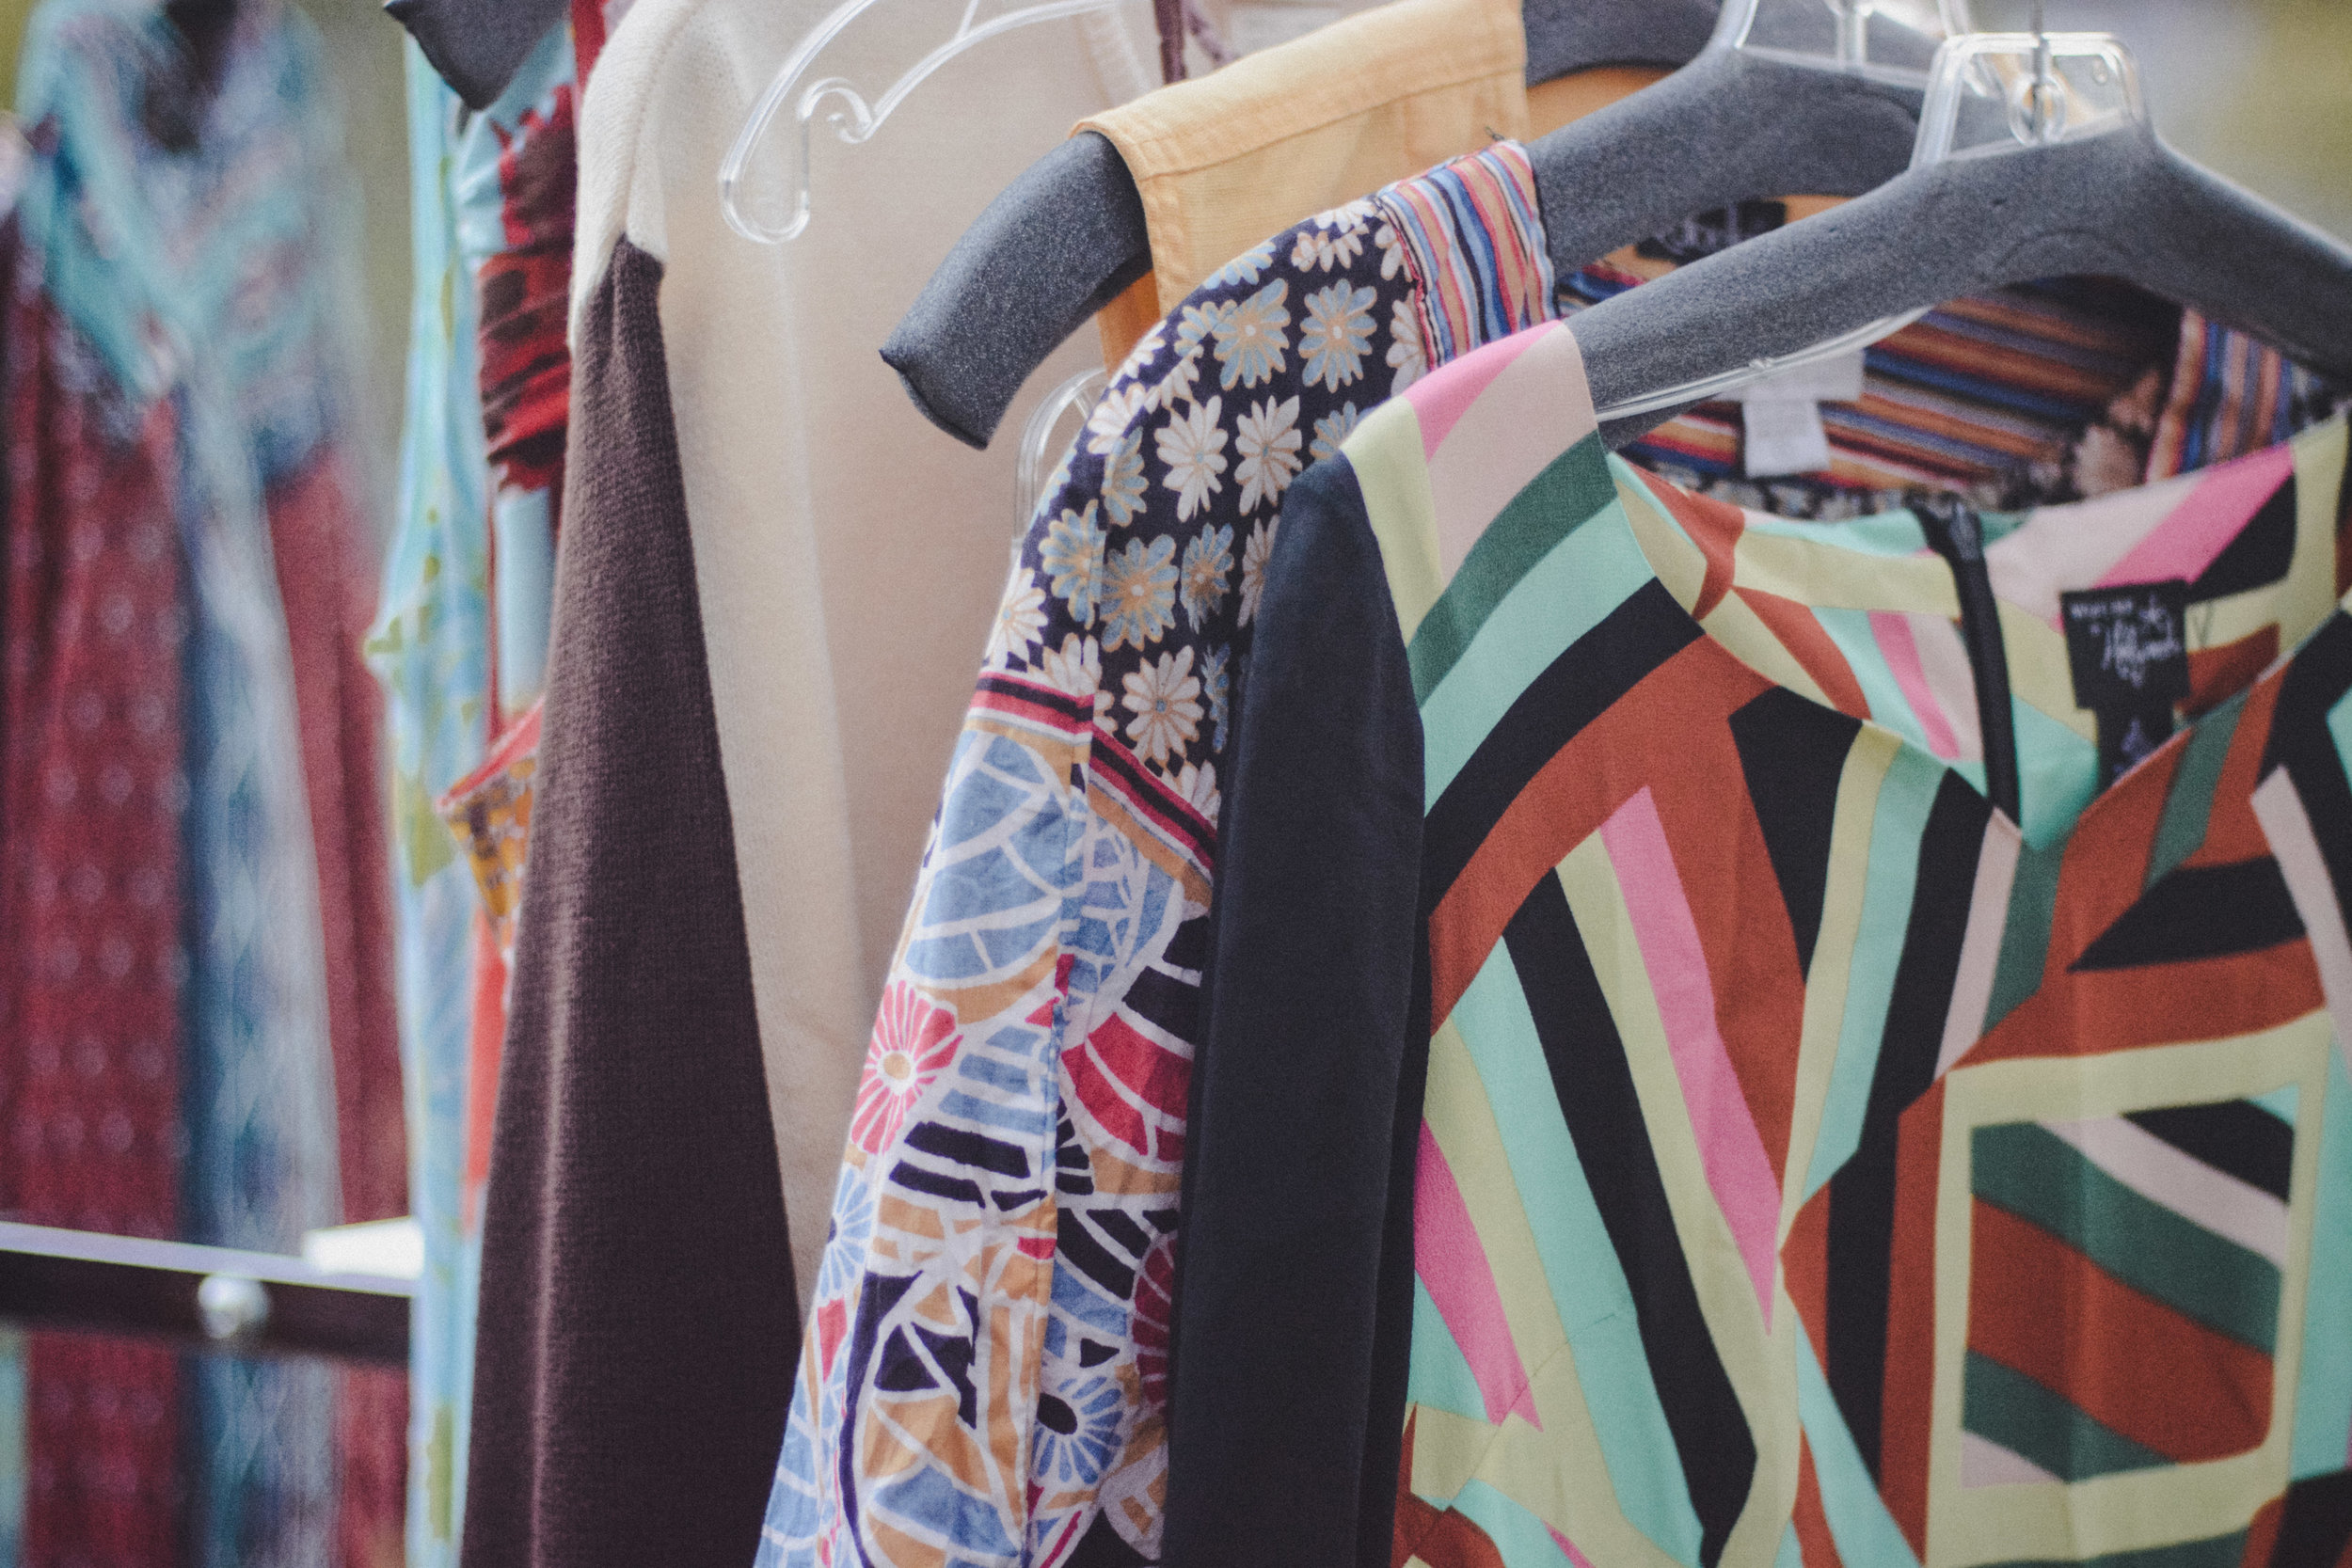 5 Reasons Thrifting is Awesome from Vagabondary